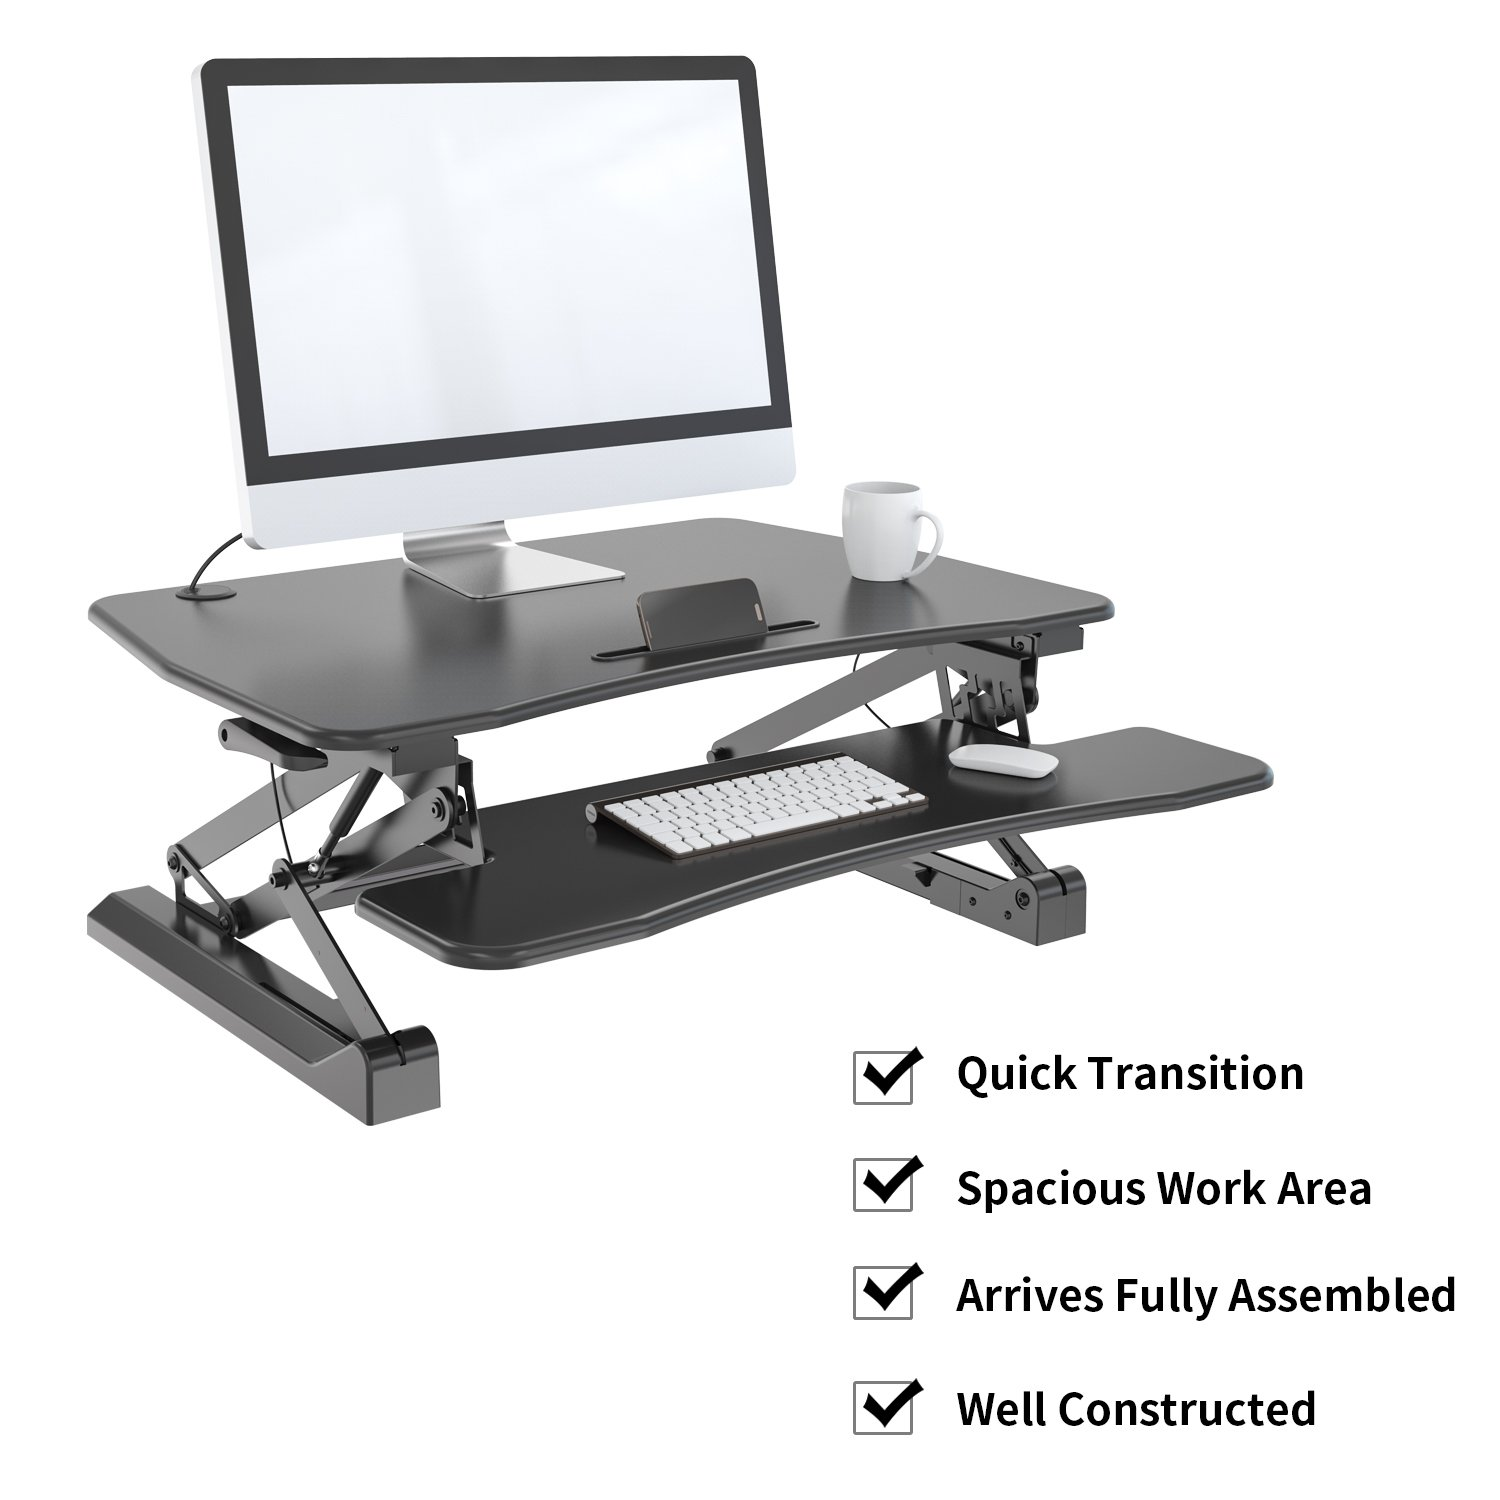 Zeal Height Adjustable Standing Desk Ergonomic Laptop Monitor Standing Dual Riser Sit to Stand Table Computer Workstation Desk (Black) by Zealdesk (Image #4)